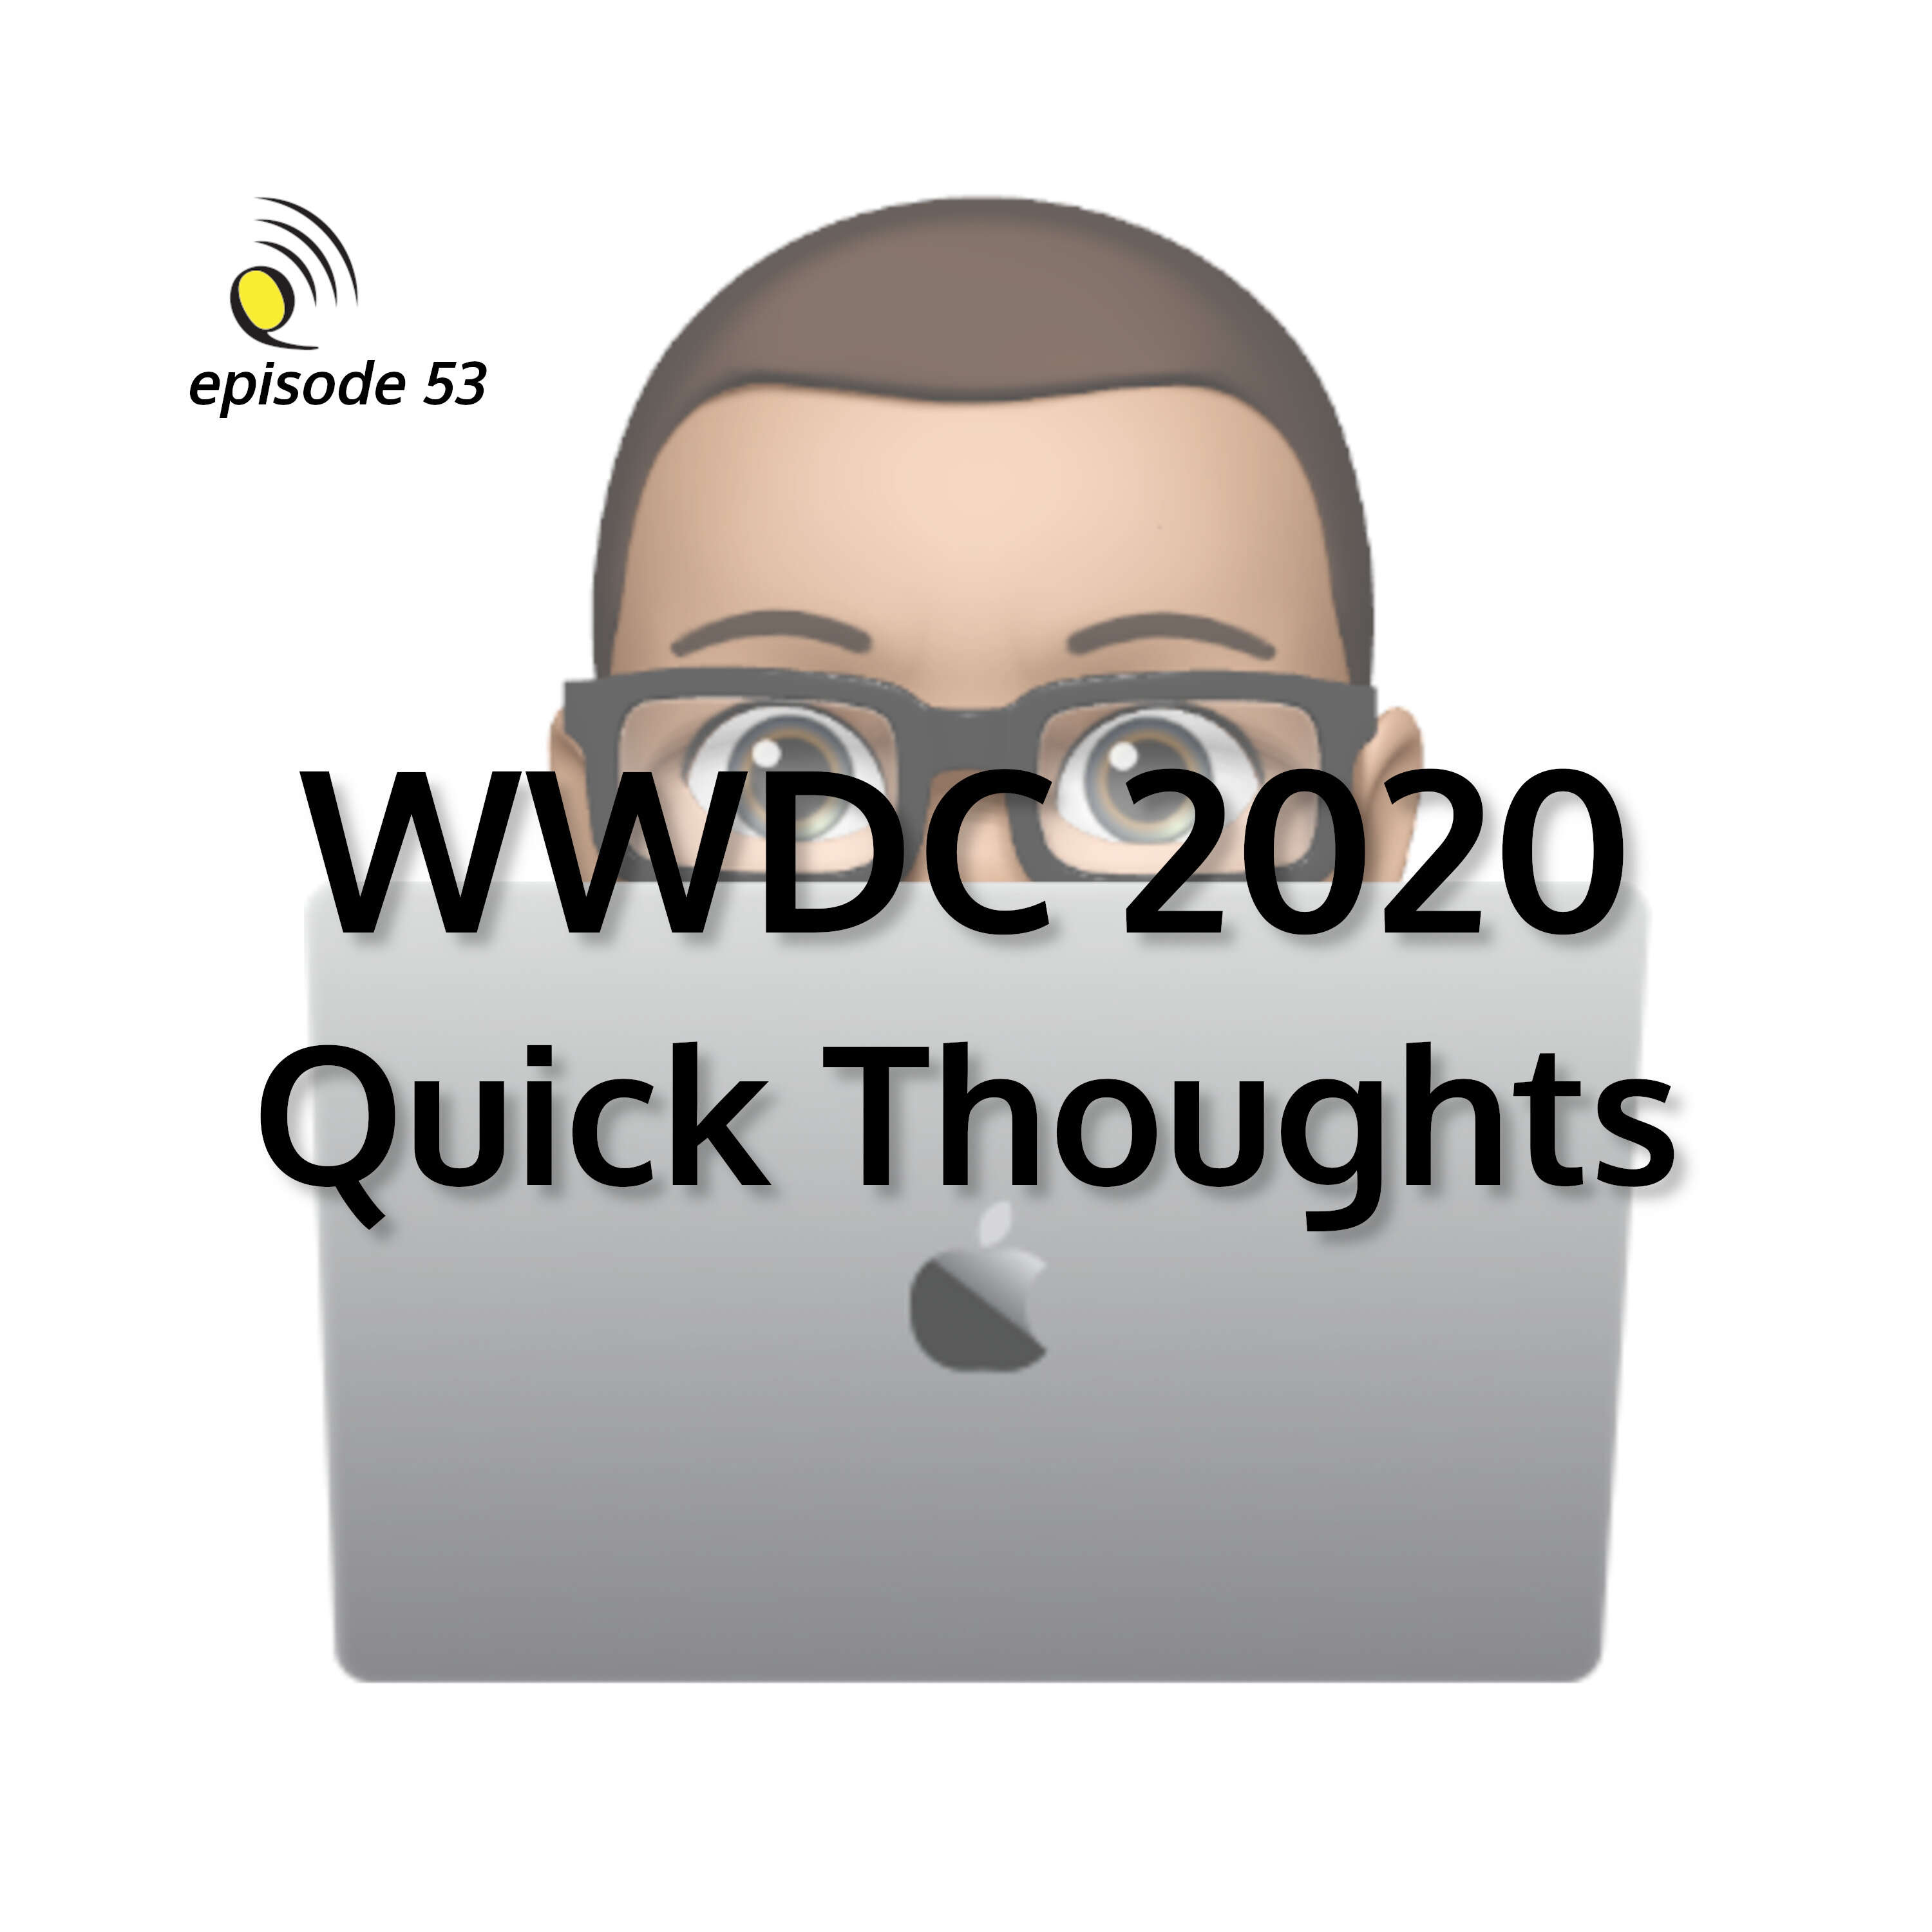 WWDC 2020 - Quick Thoughts